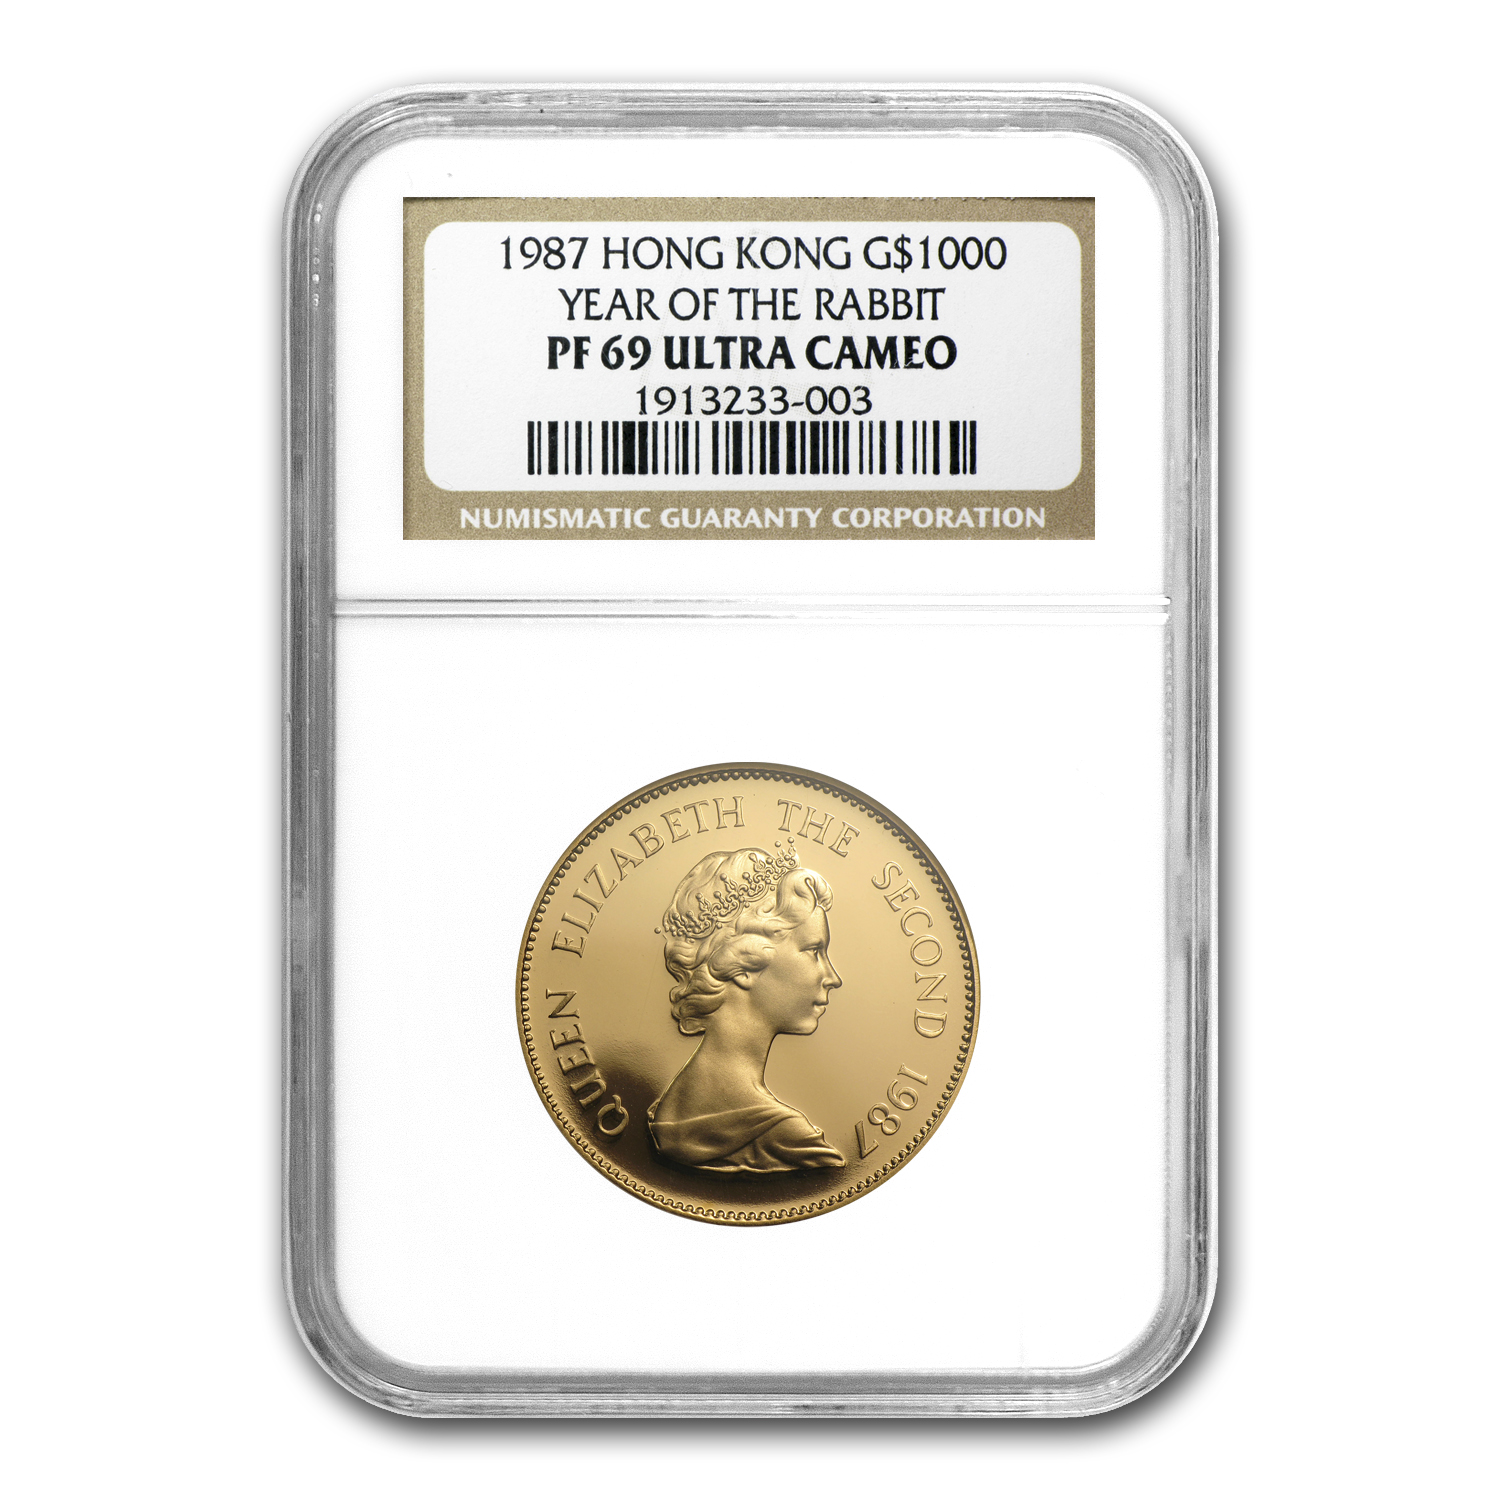 1987 Hong Kong Proof Gold $1000 Rabbit PF-69 NGC